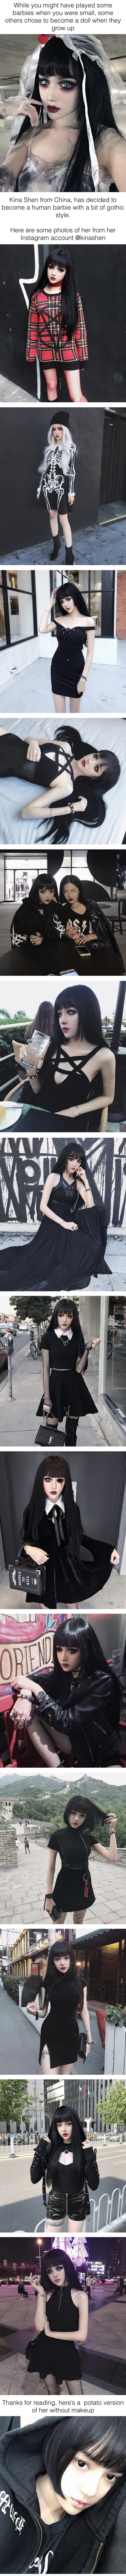 Kina Shen From China Is A Human Gothic Barbie